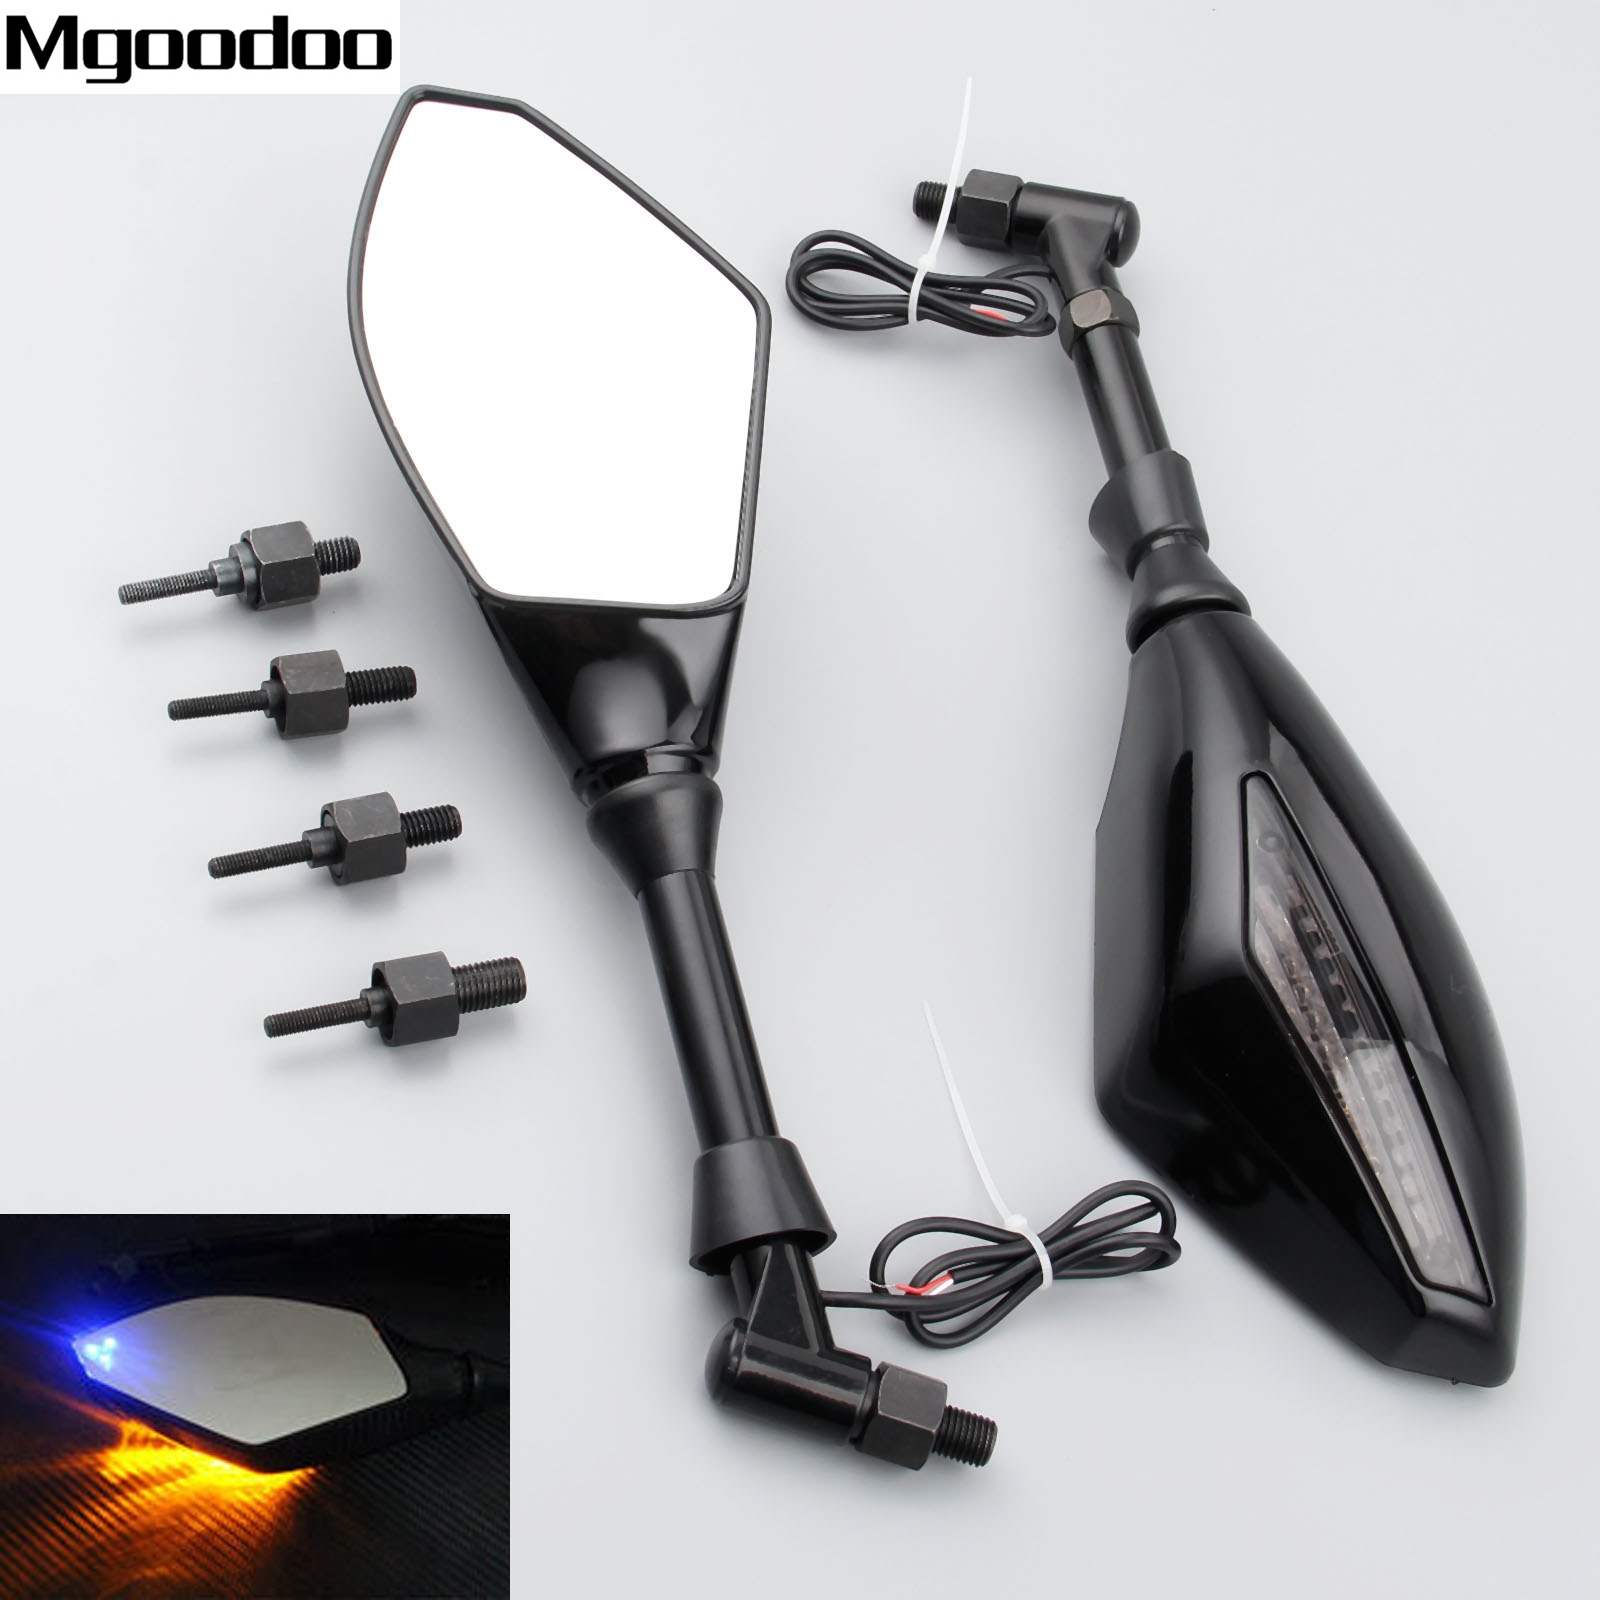 2x Universal 8mm 10mm Motorcycle LED Turn Lights Side Mirrors Turn Signal Indicator Rearview Mirror For Honda Suzuki Street Bike